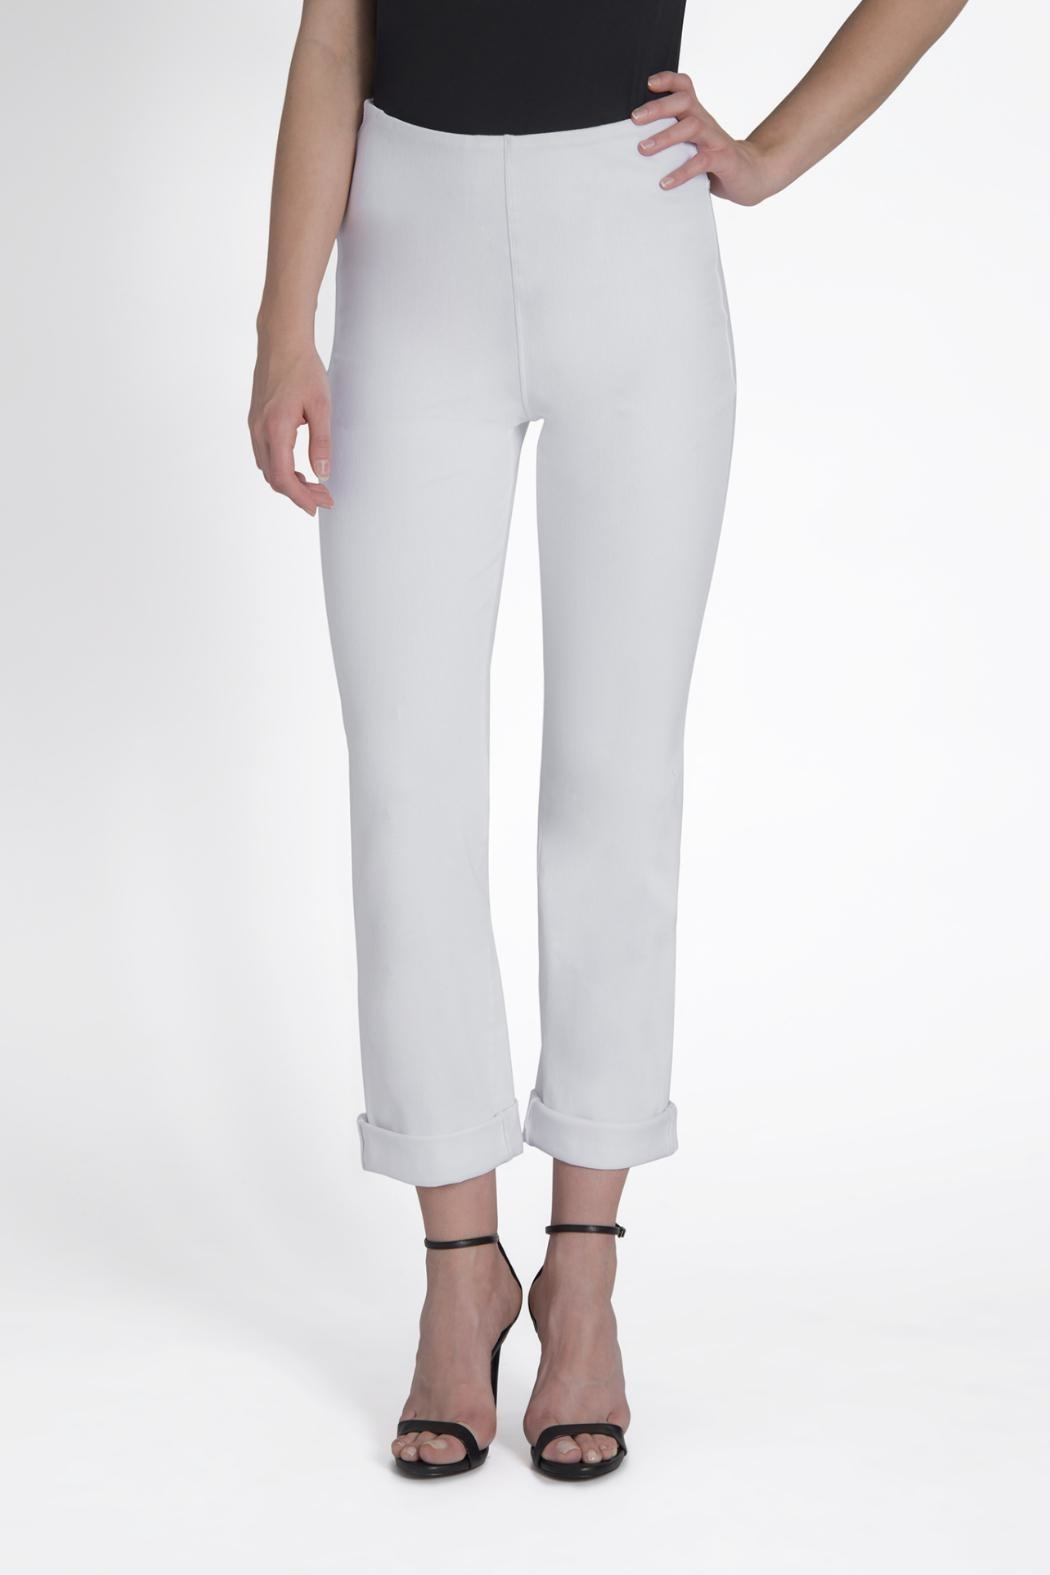 Lysse White Boyfriend Cuffed Denim - Front Cropped Image